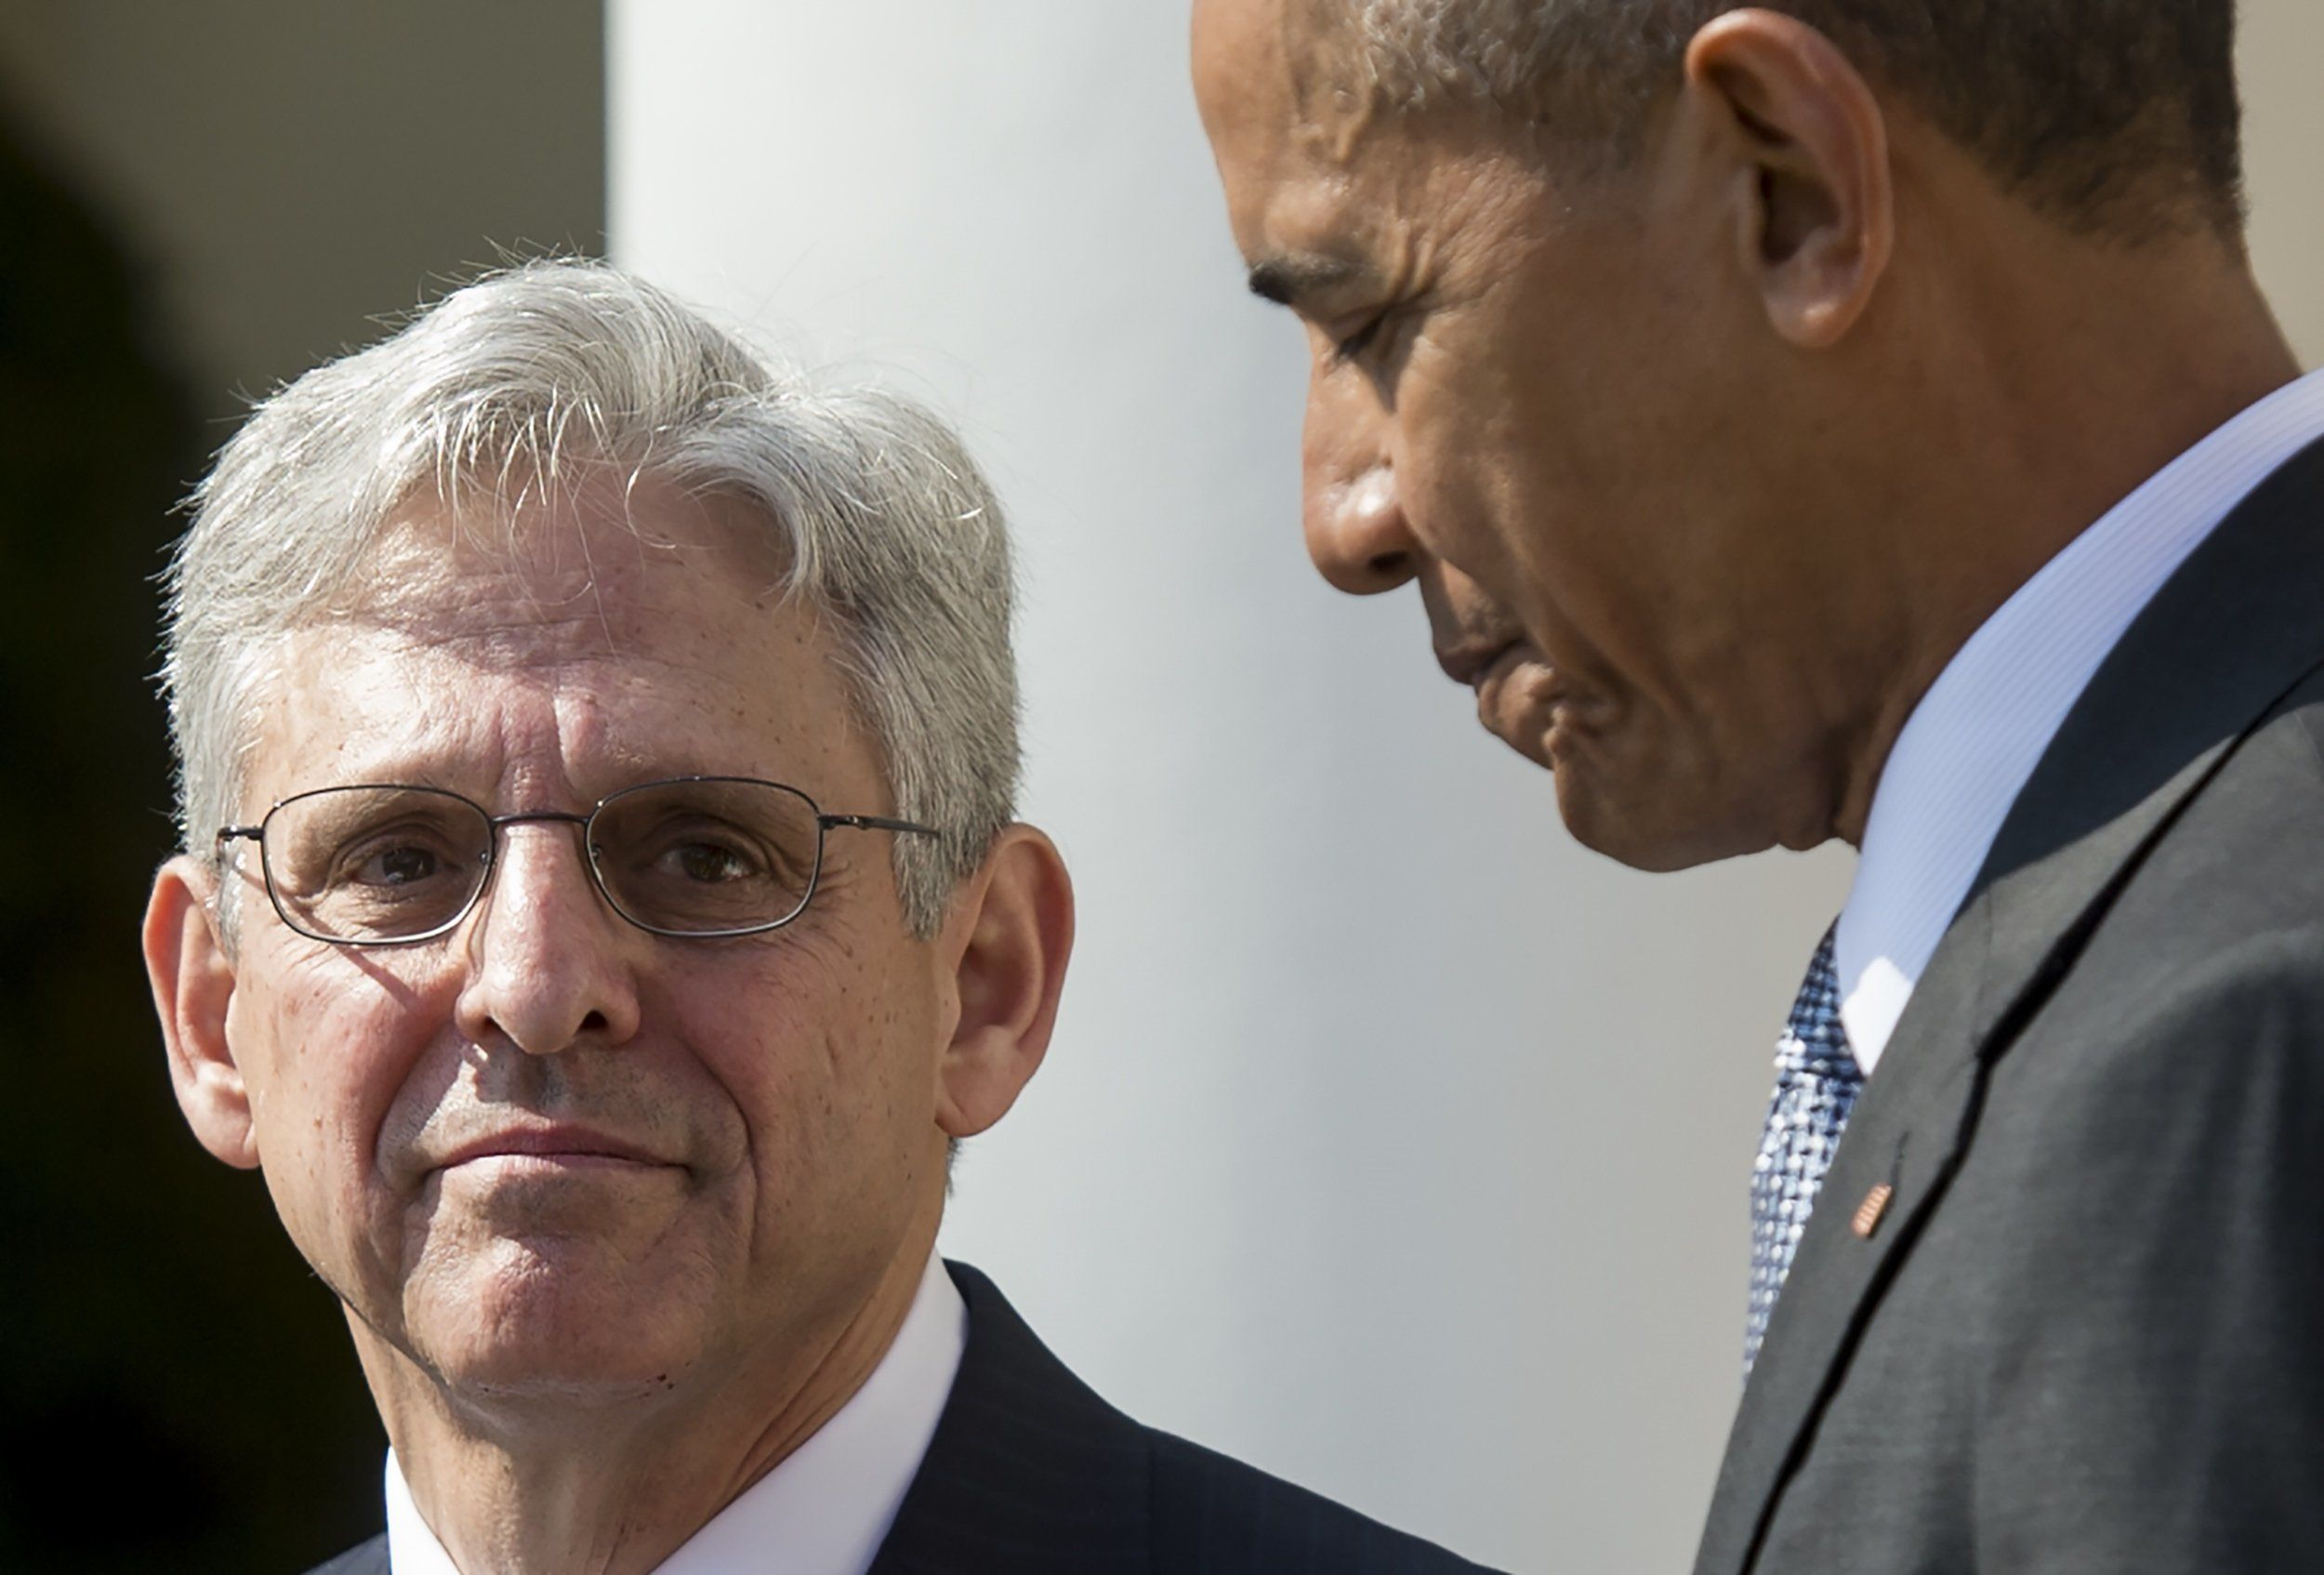 US President Barack Obama announces his Supreme Court nominee, federal appeals court judge Merrick Garland during an announcement in the Rose Garden of the White House in Washington, DC, March 16, 2016. Garland, 63, is currently Chief Judge of the United States Court of Appeals for the District of Columbia Circuit. The nomination sets the stage for an election-year showdown with Republicans who have made it clear they have no intention of holding hearings to vet any Supreme Court nominee put forward by the president. / AFP / SAUL LOEB        (Photo credit should read SAUL LOEB/AFP/Getty Images)